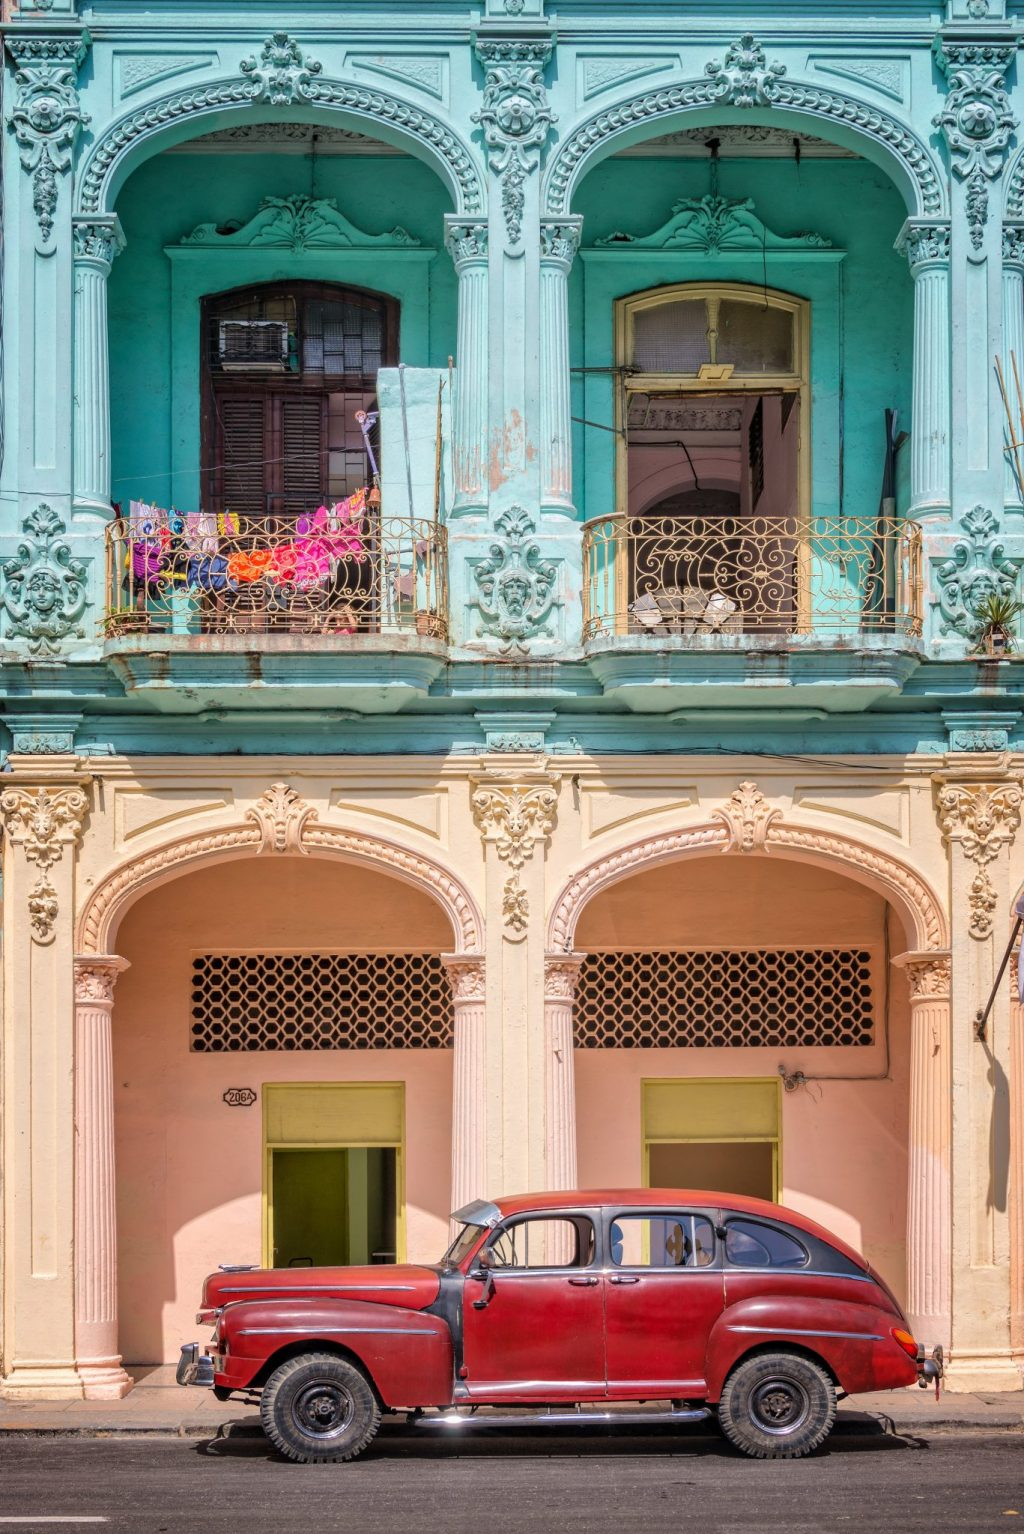 Things to do in Havana, Cuba: The ultimate guide